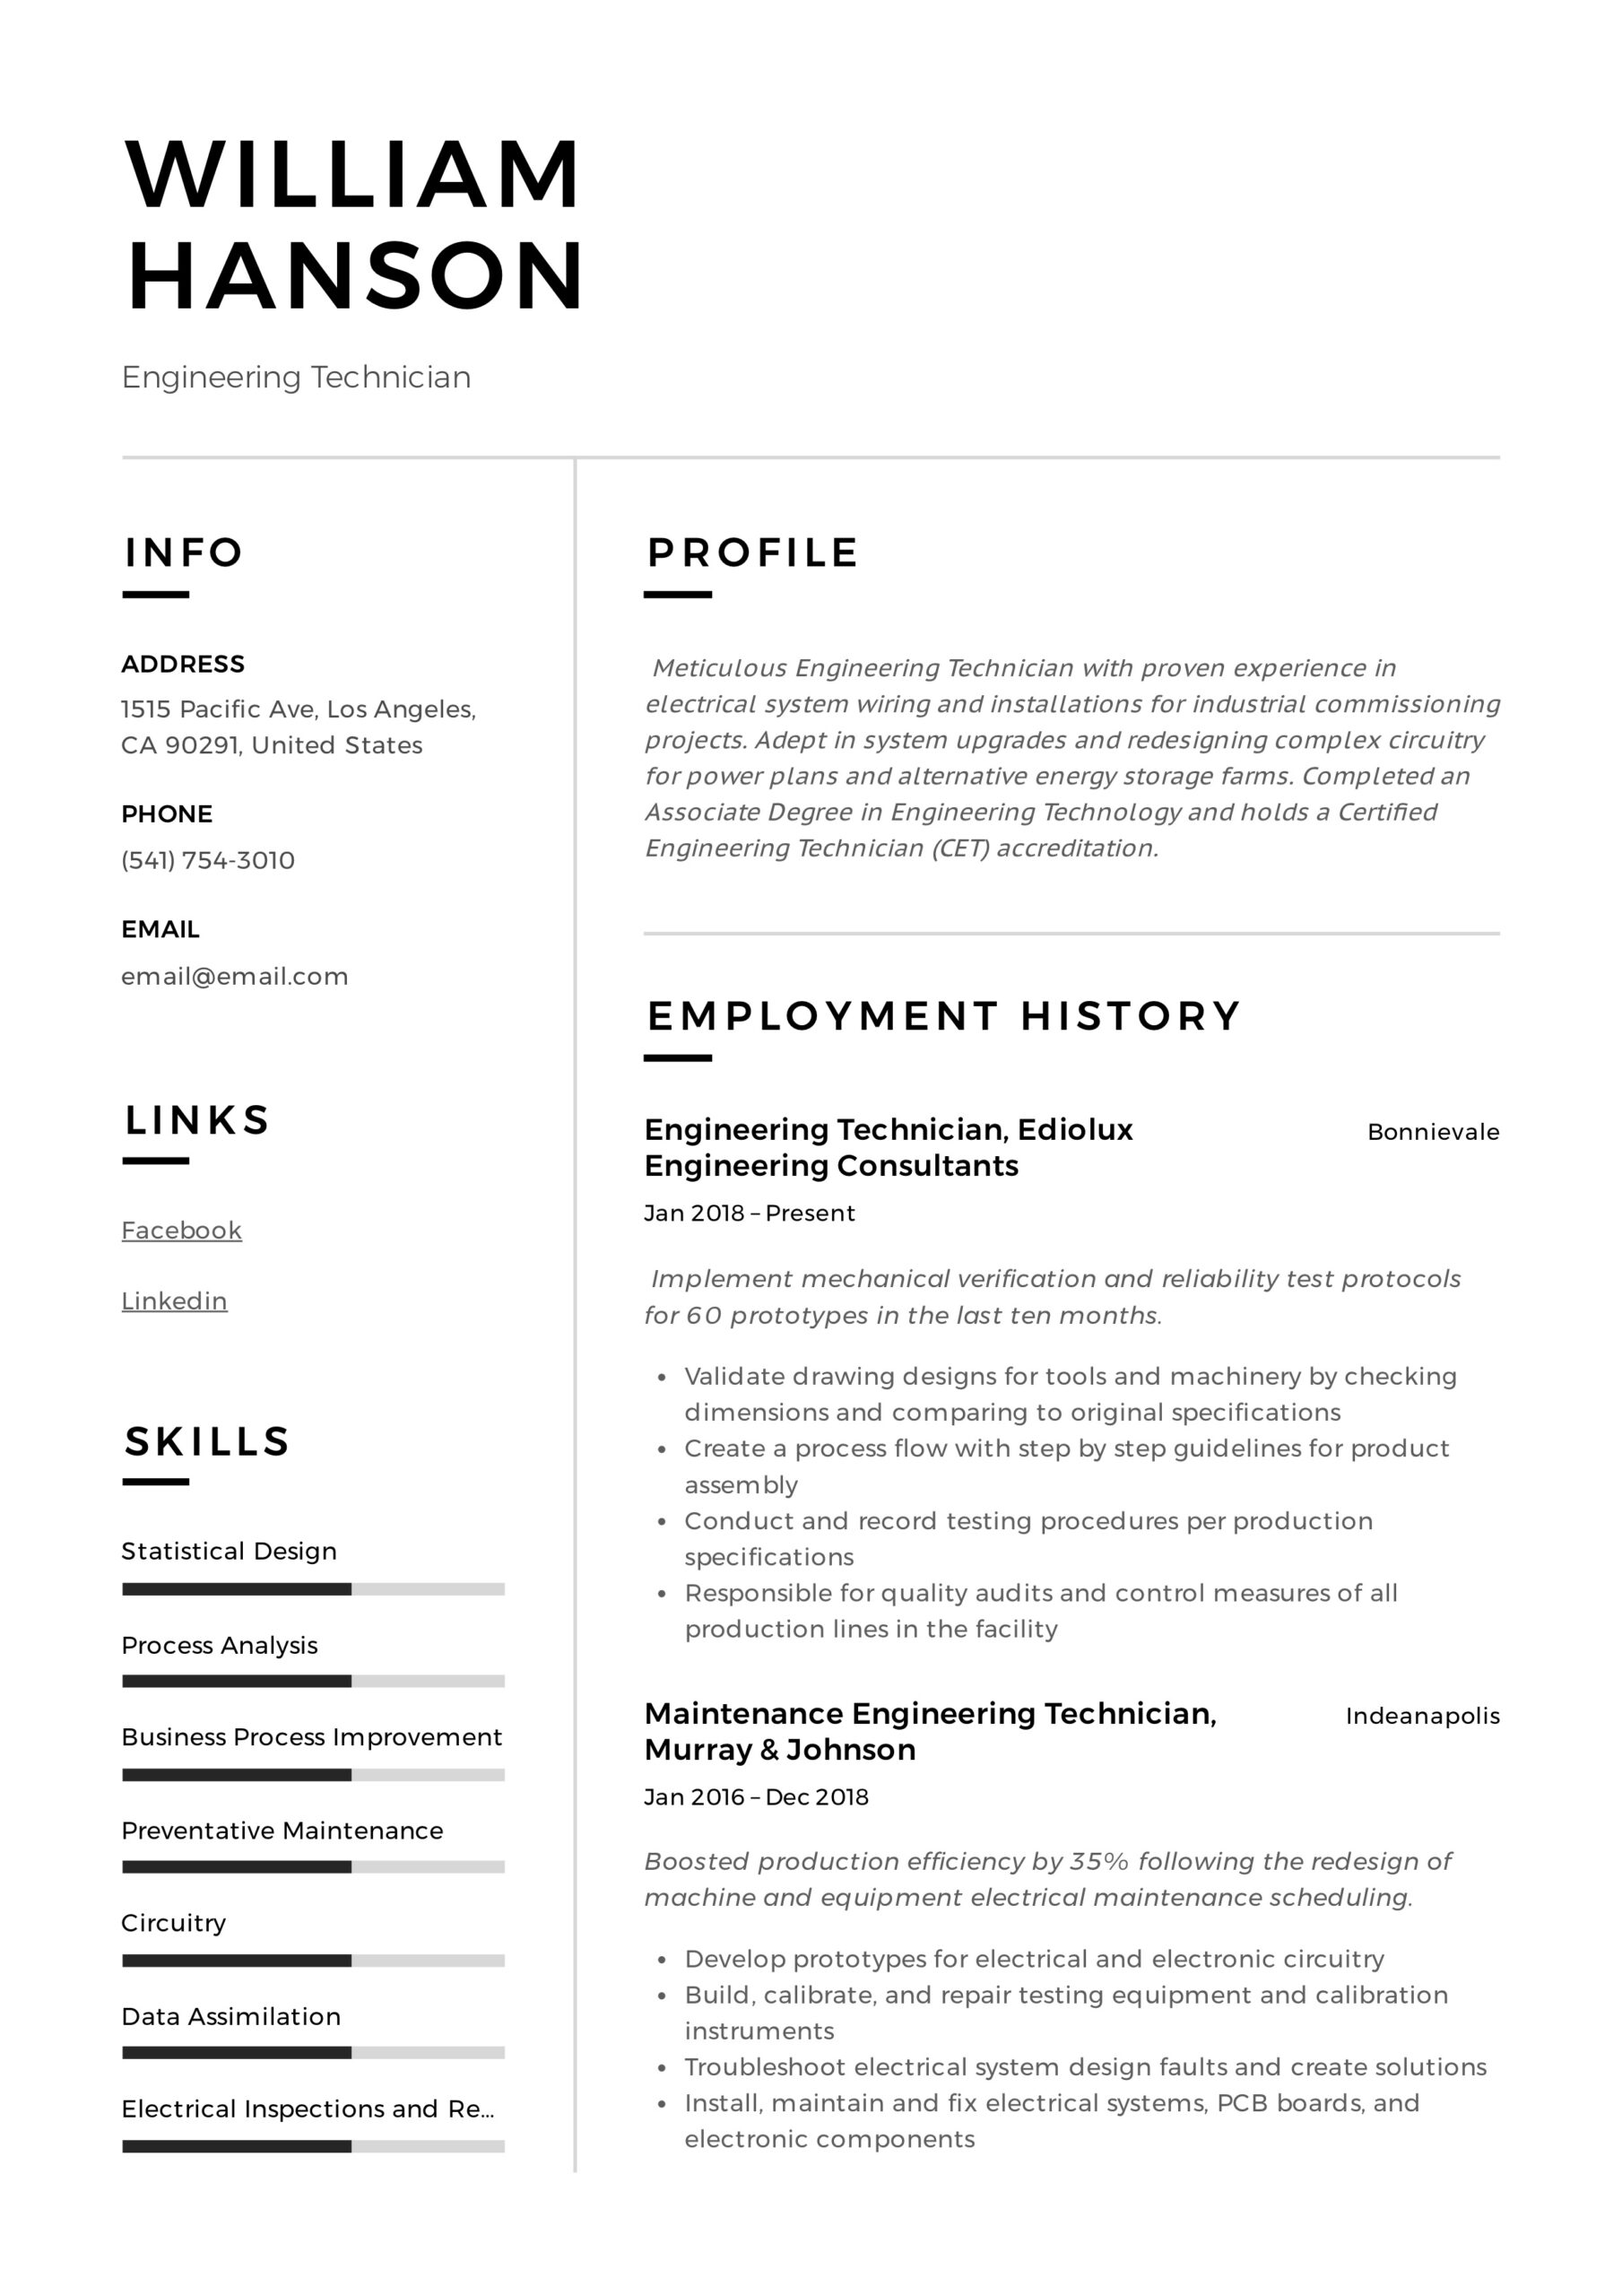 engineering technician resume writing guide templates example qualities and skills Resume Technician Resume Example